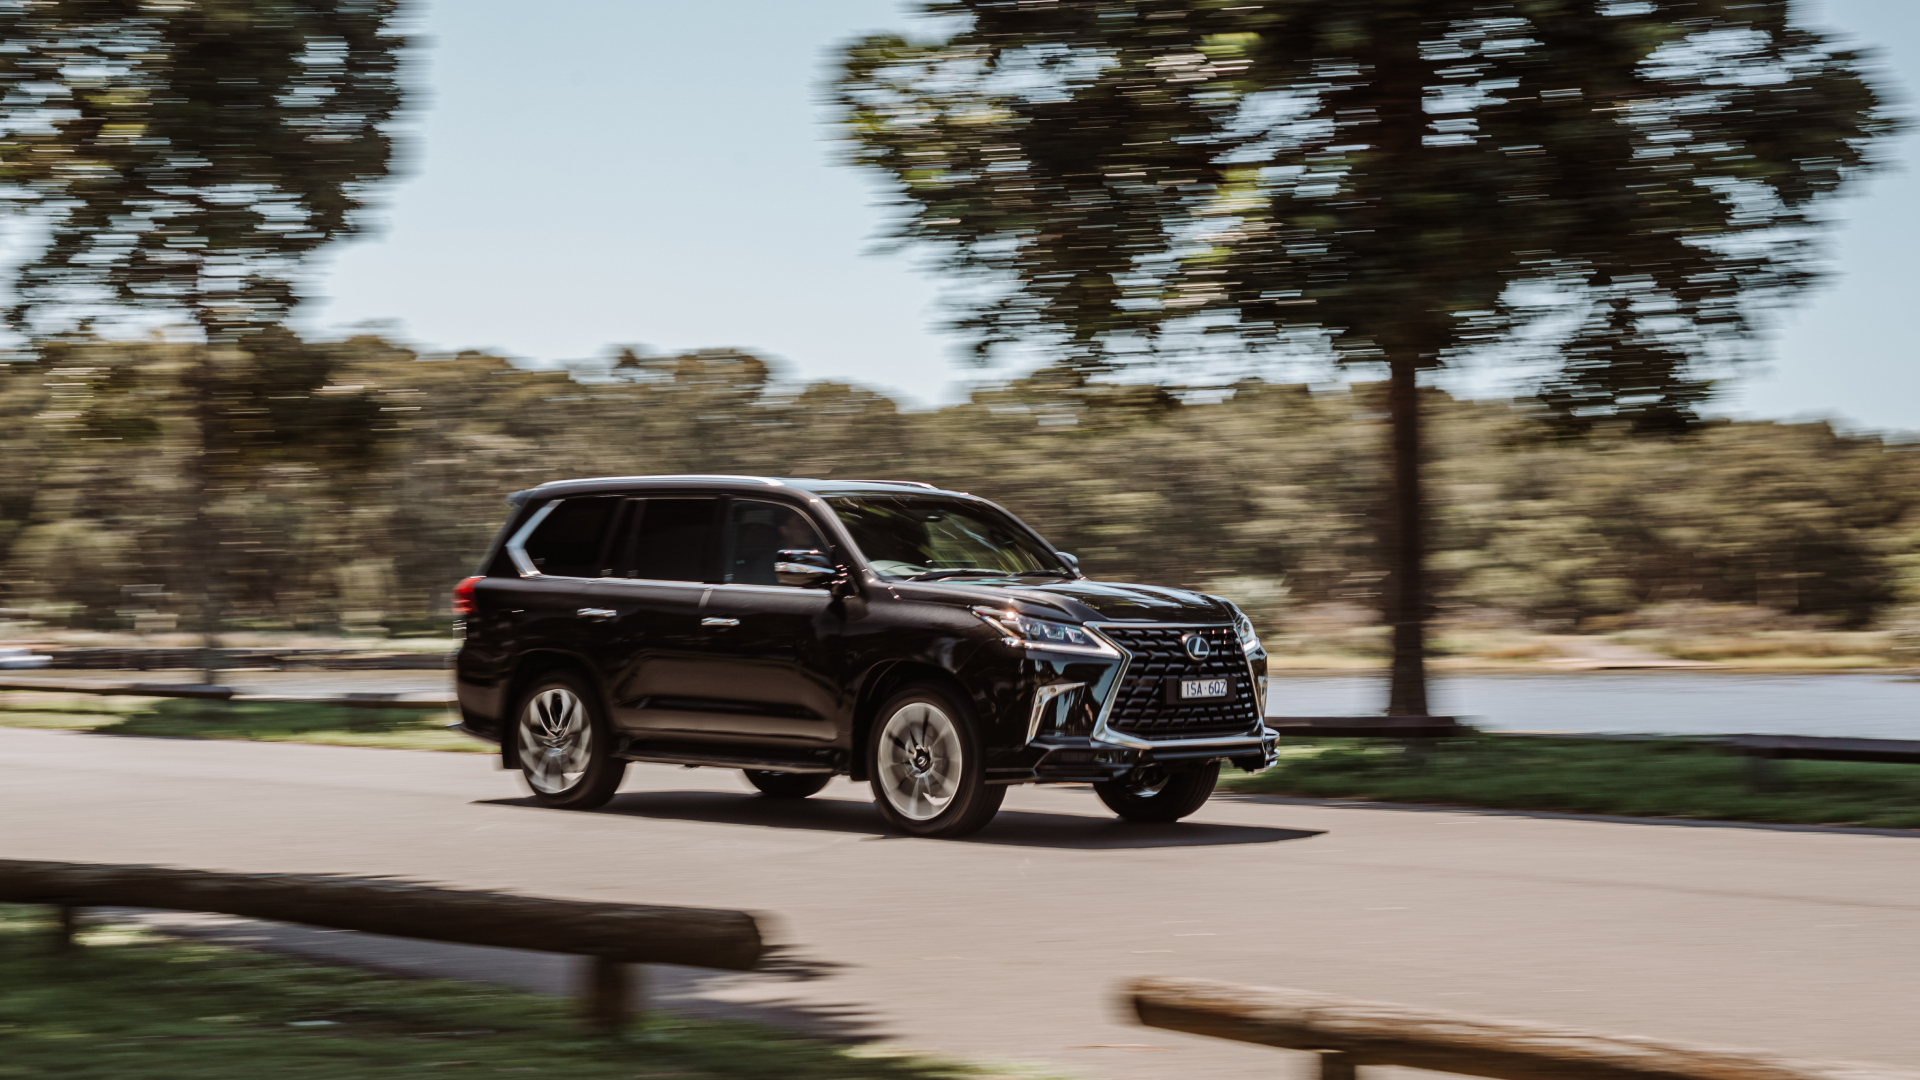 A 2021 Lexus LX 570 S drives along a road at speed.